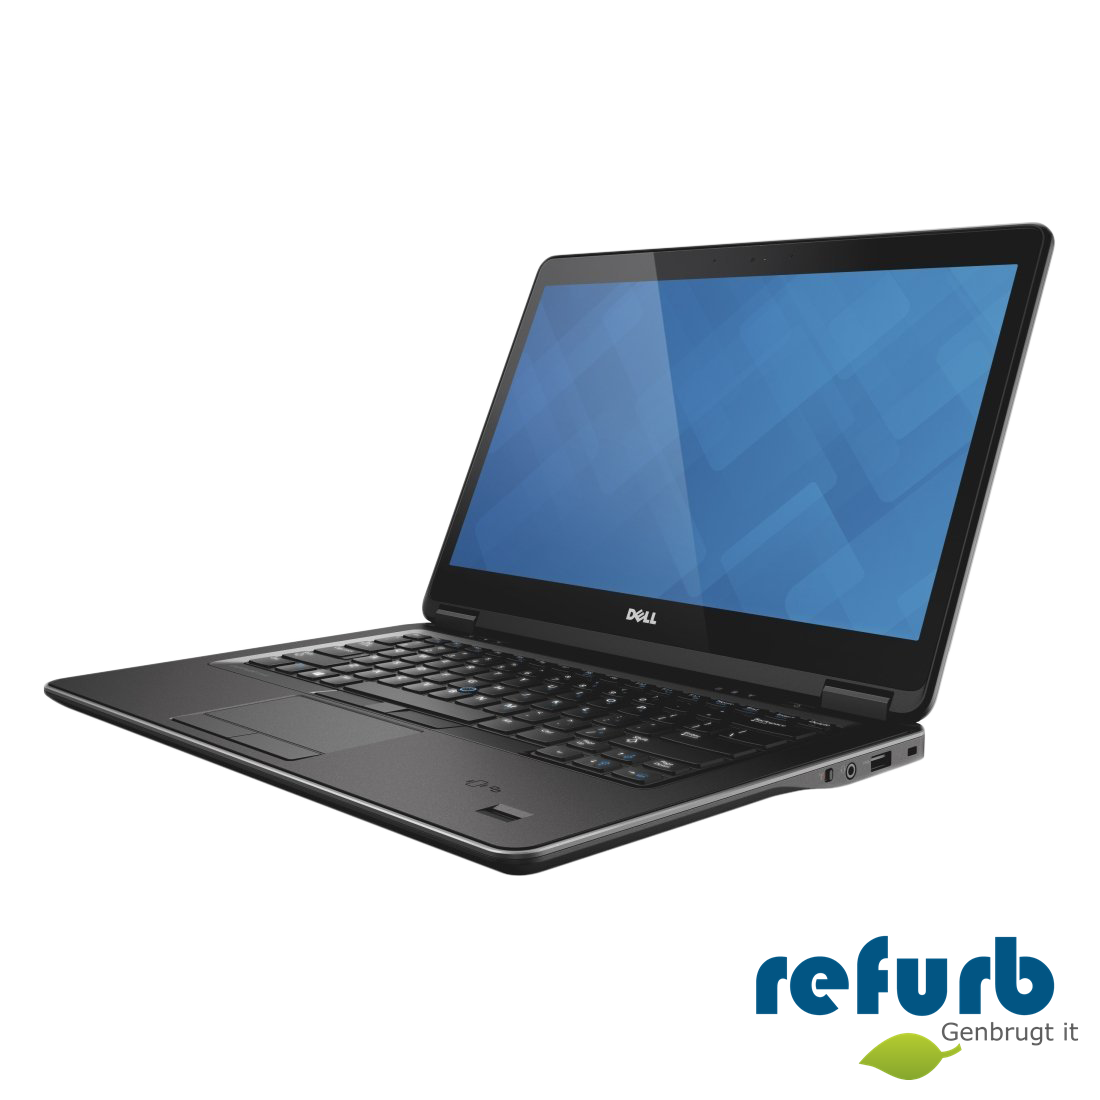 Dell Dell latitude e7440 på refurb